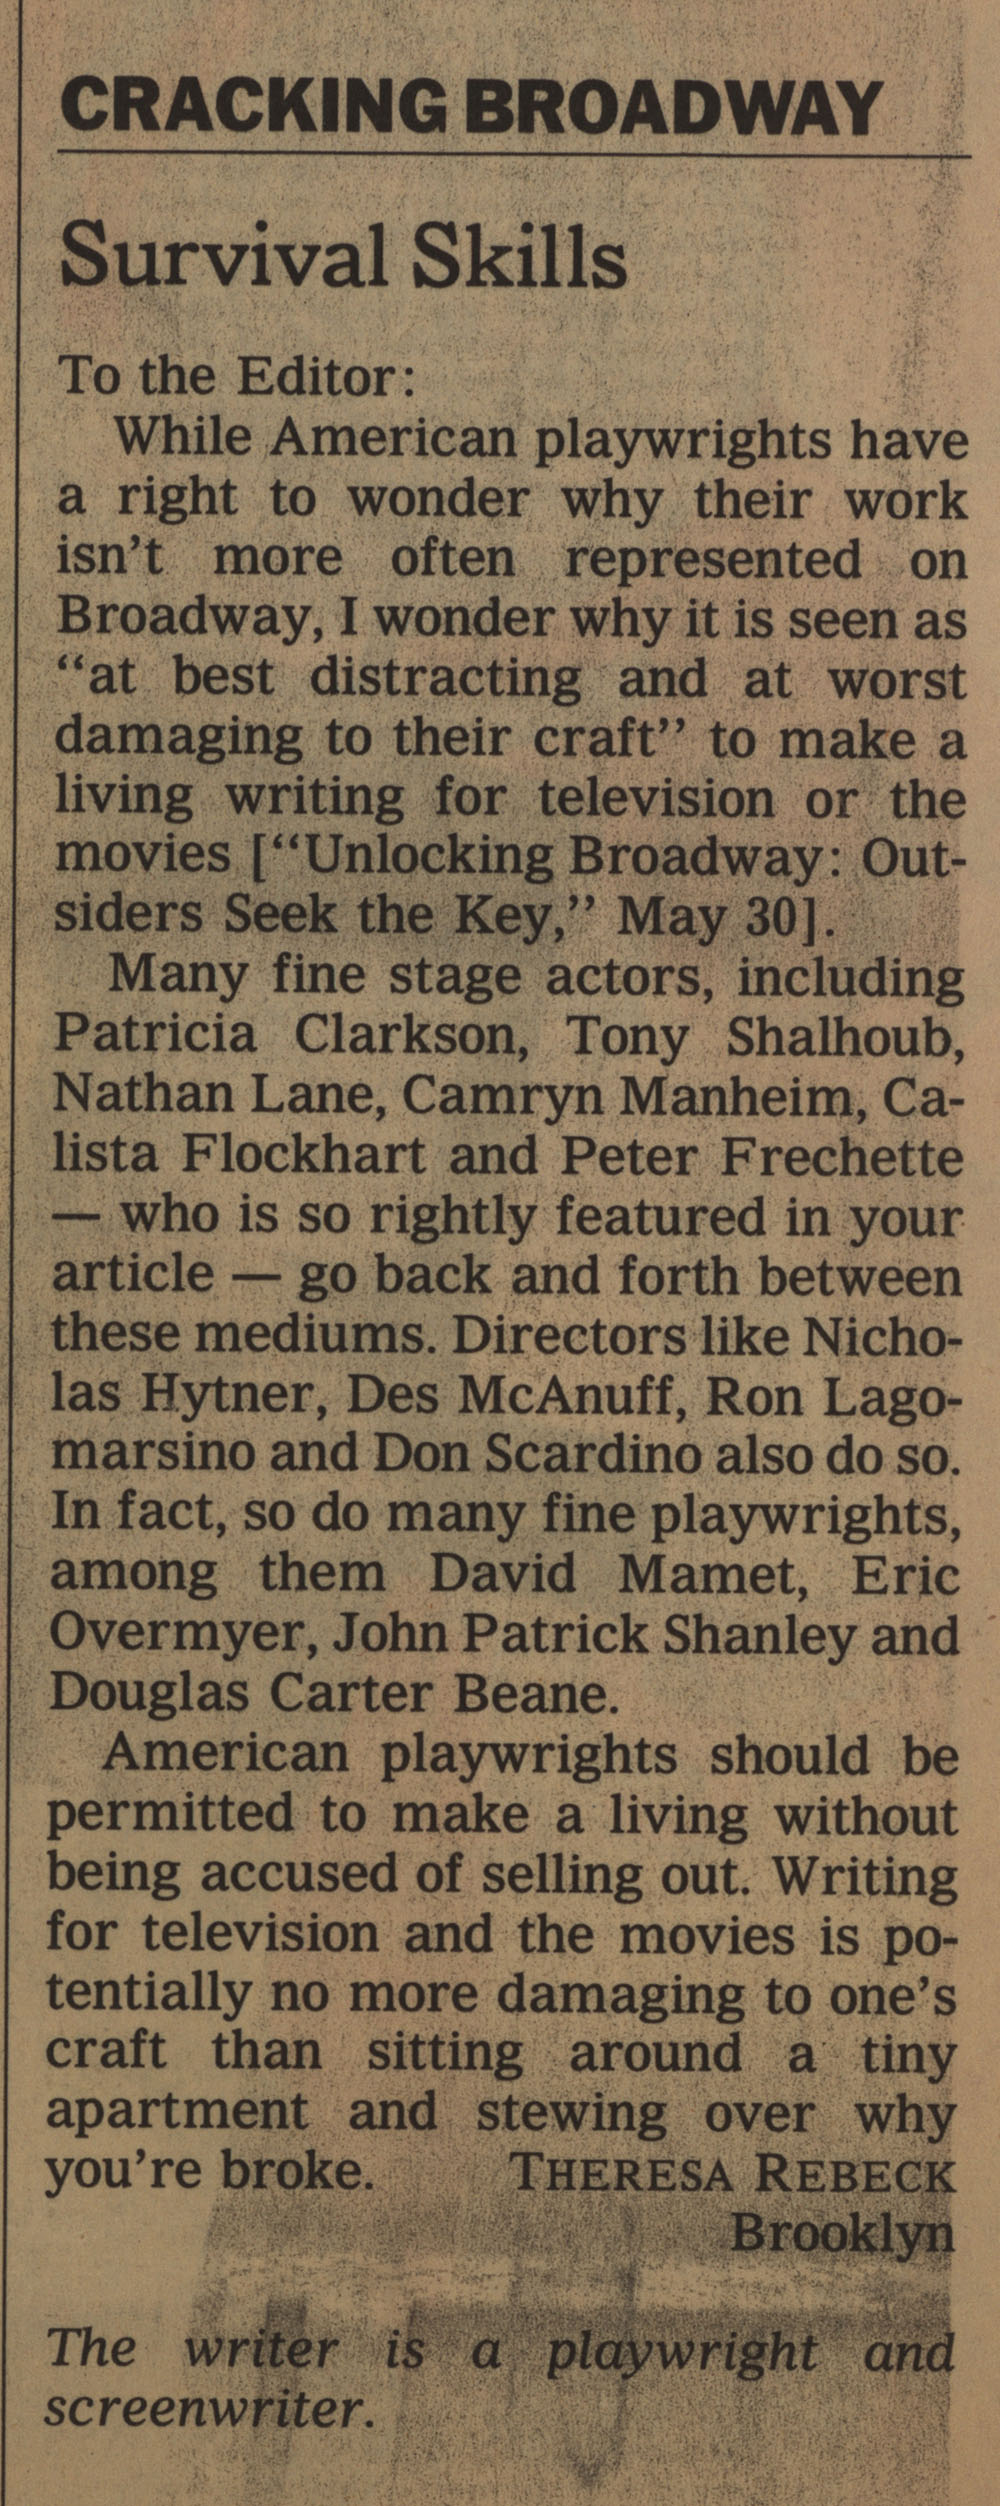 """""""Cracking Broadway: Survival Skills"""" (letter to the editor), New York Times, June 13, 1999"""